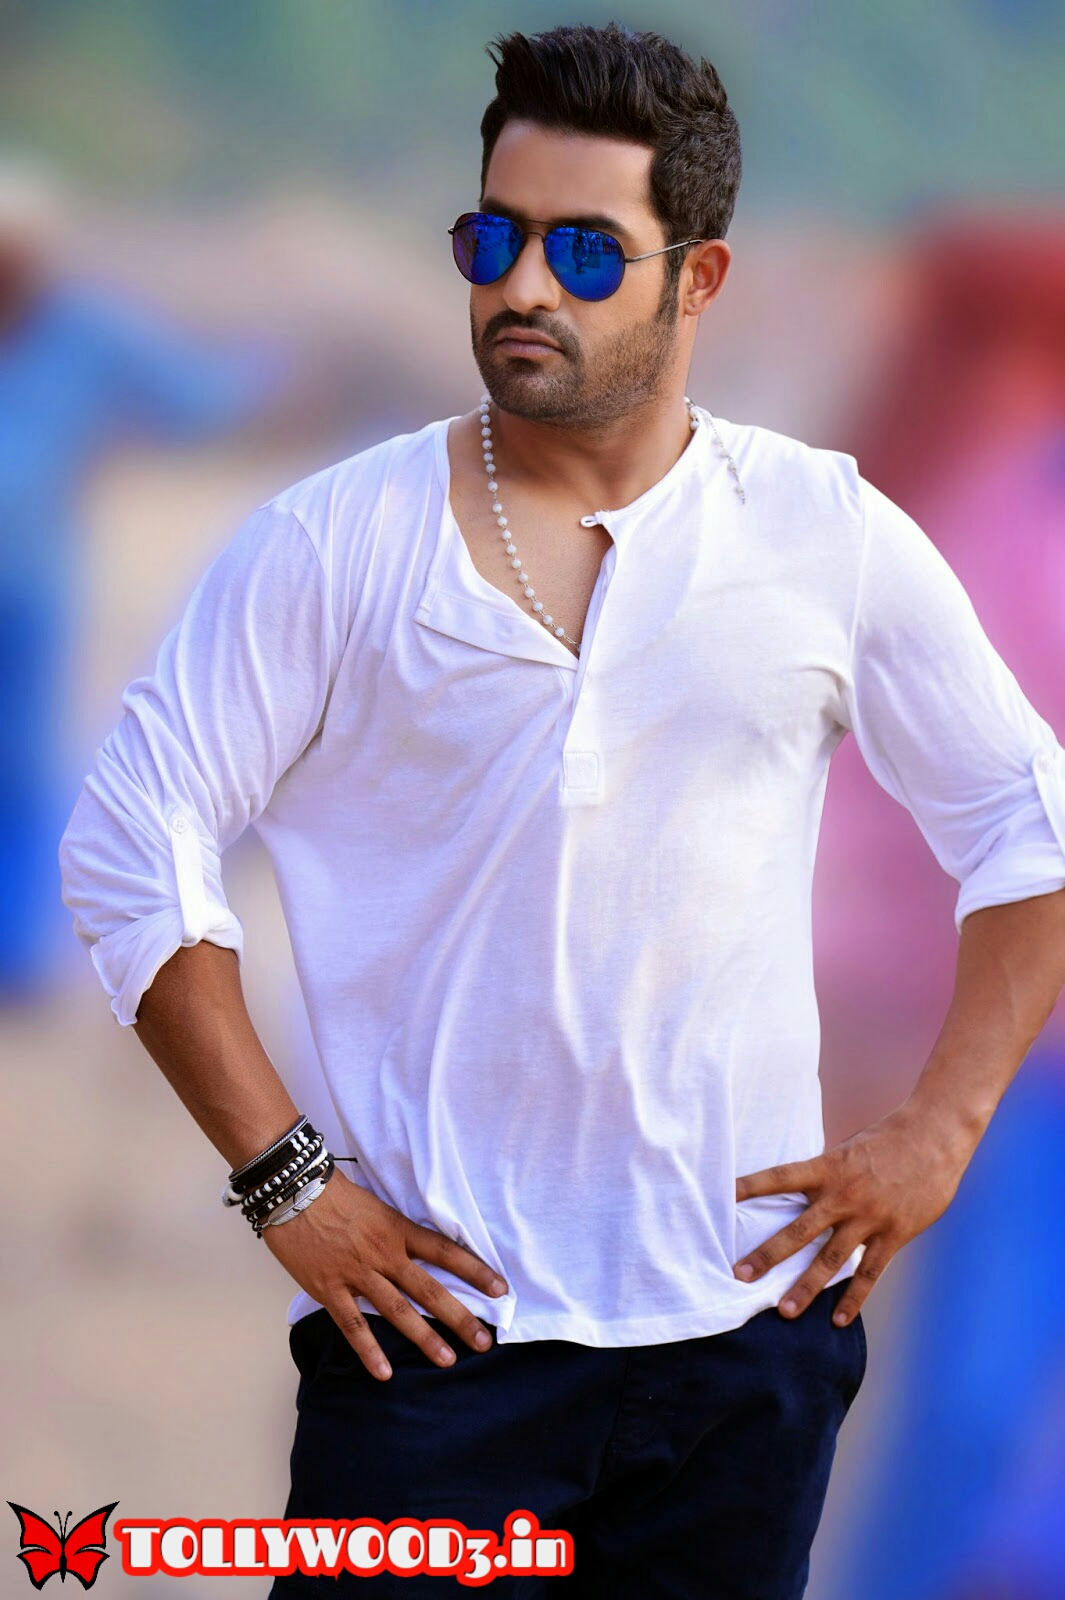 jr. ntr upcoming (2015 - 2016 - 2017) movies list.